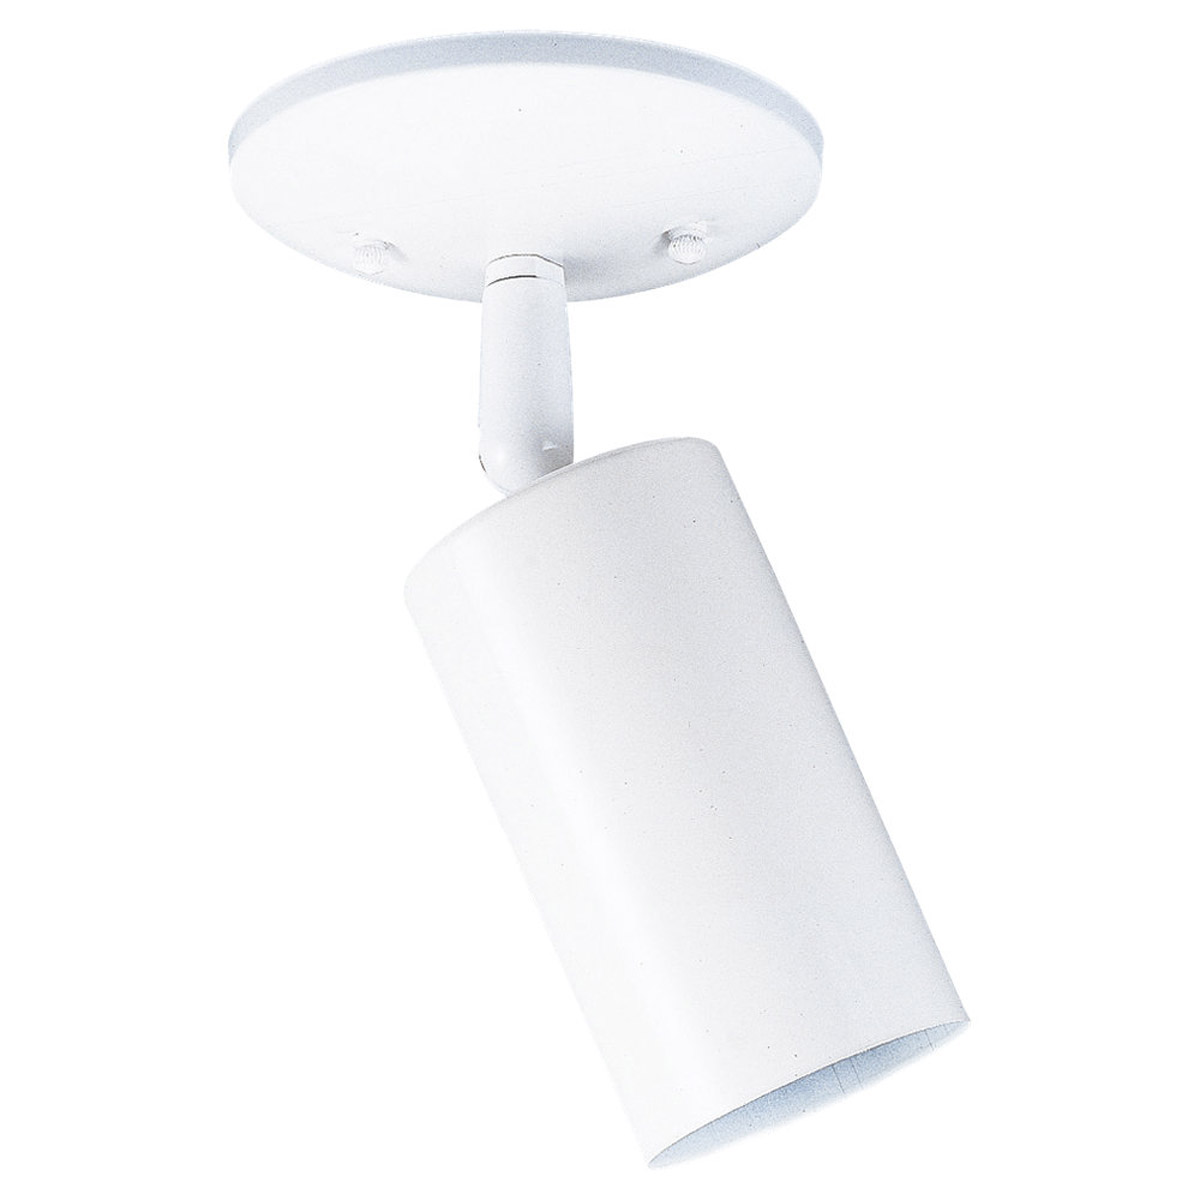 Sea Gull Lighting Bullets 1 Light Directional Ceiling Light in White 2011-15